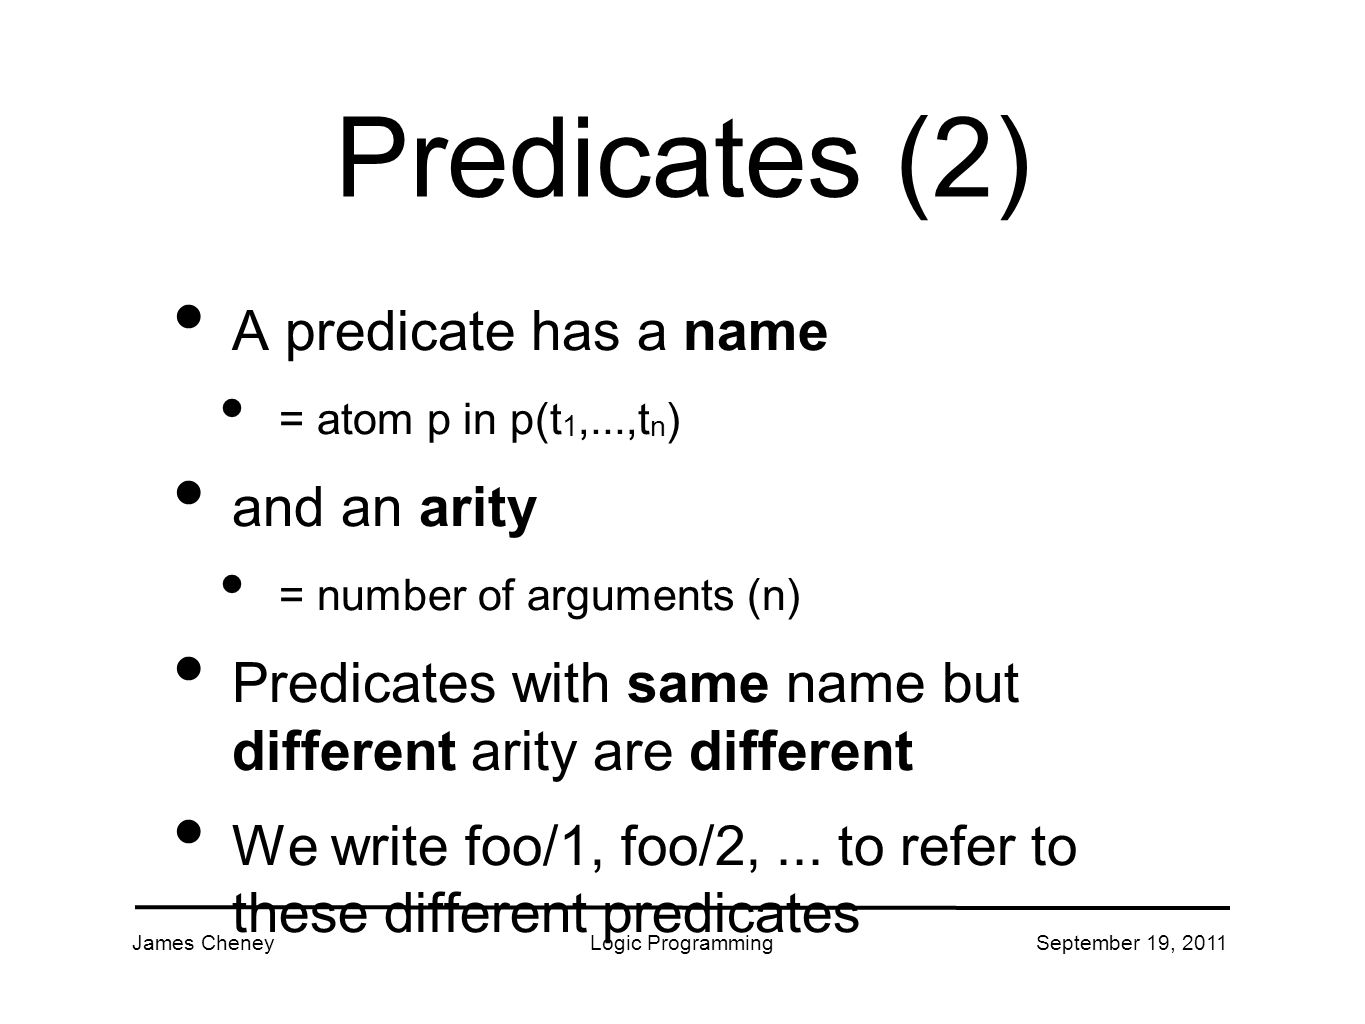 James CheneyLogic ProgrammingSeptember 19, 2011 Predicates (2) A predicate has a name = atom p in p(t 1,...,t n ) and an arity = number of arguments (n) Predicates with same name but different arity are different We write foo/1, foo/2,...